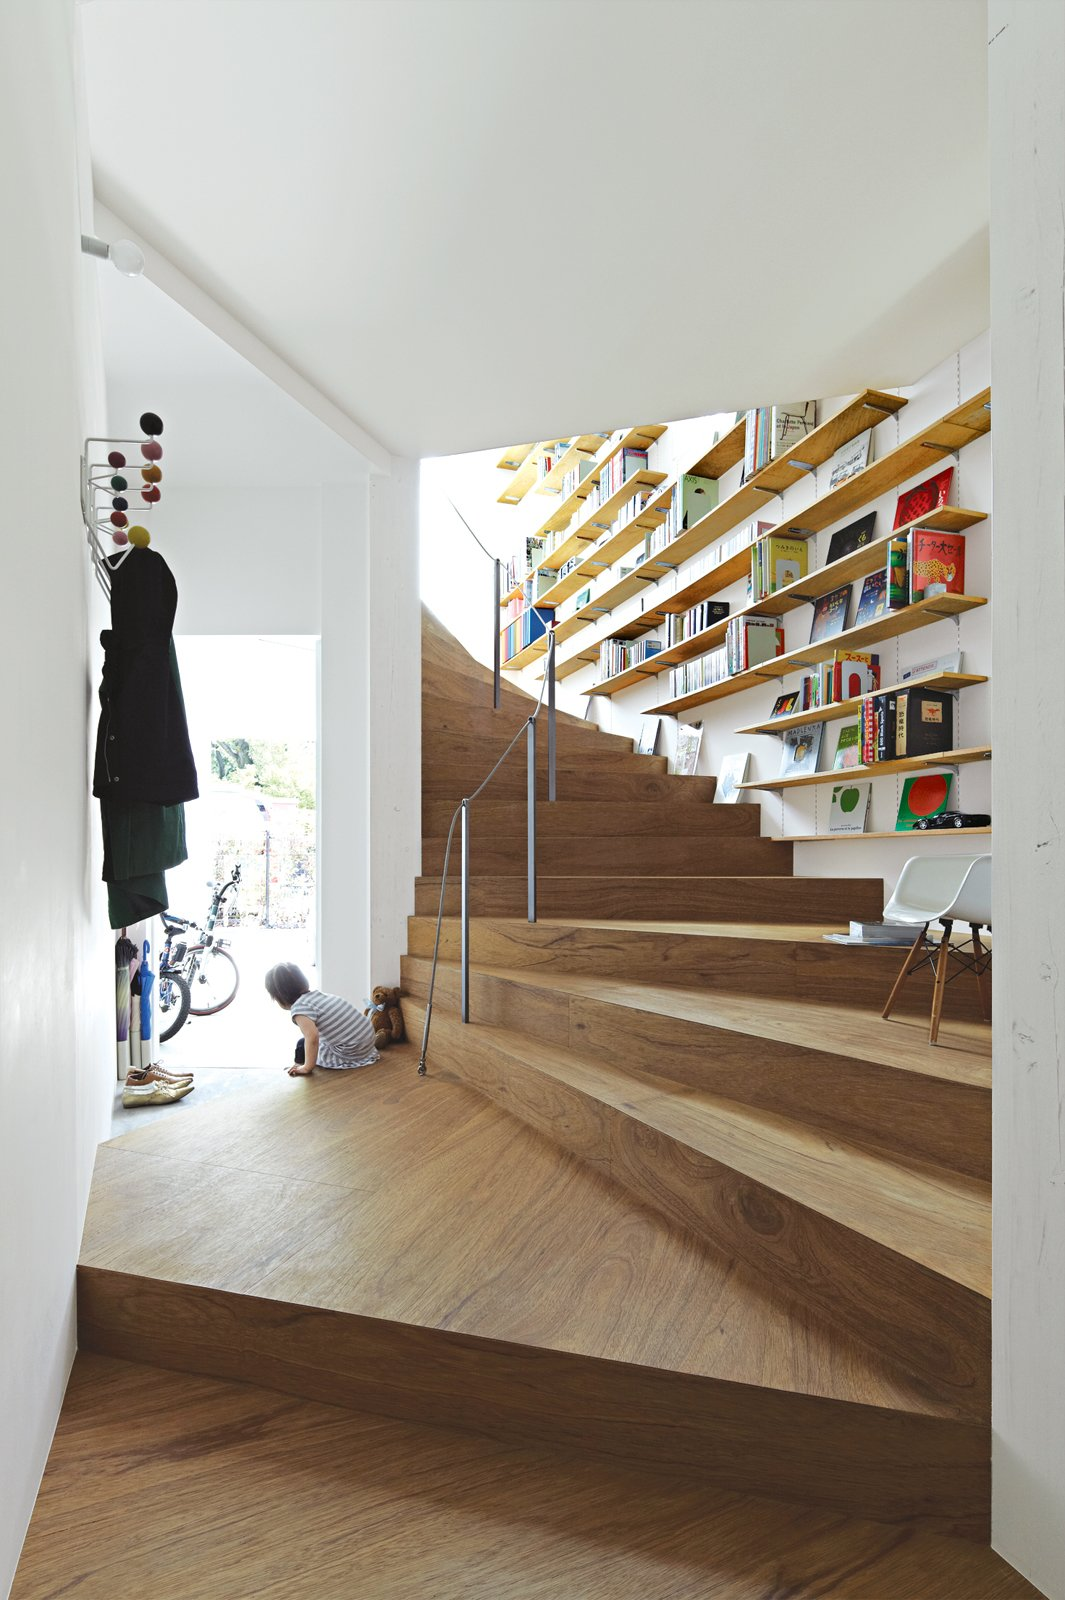 Articles about spiral staircase shapes tokyo home on Dwell.com